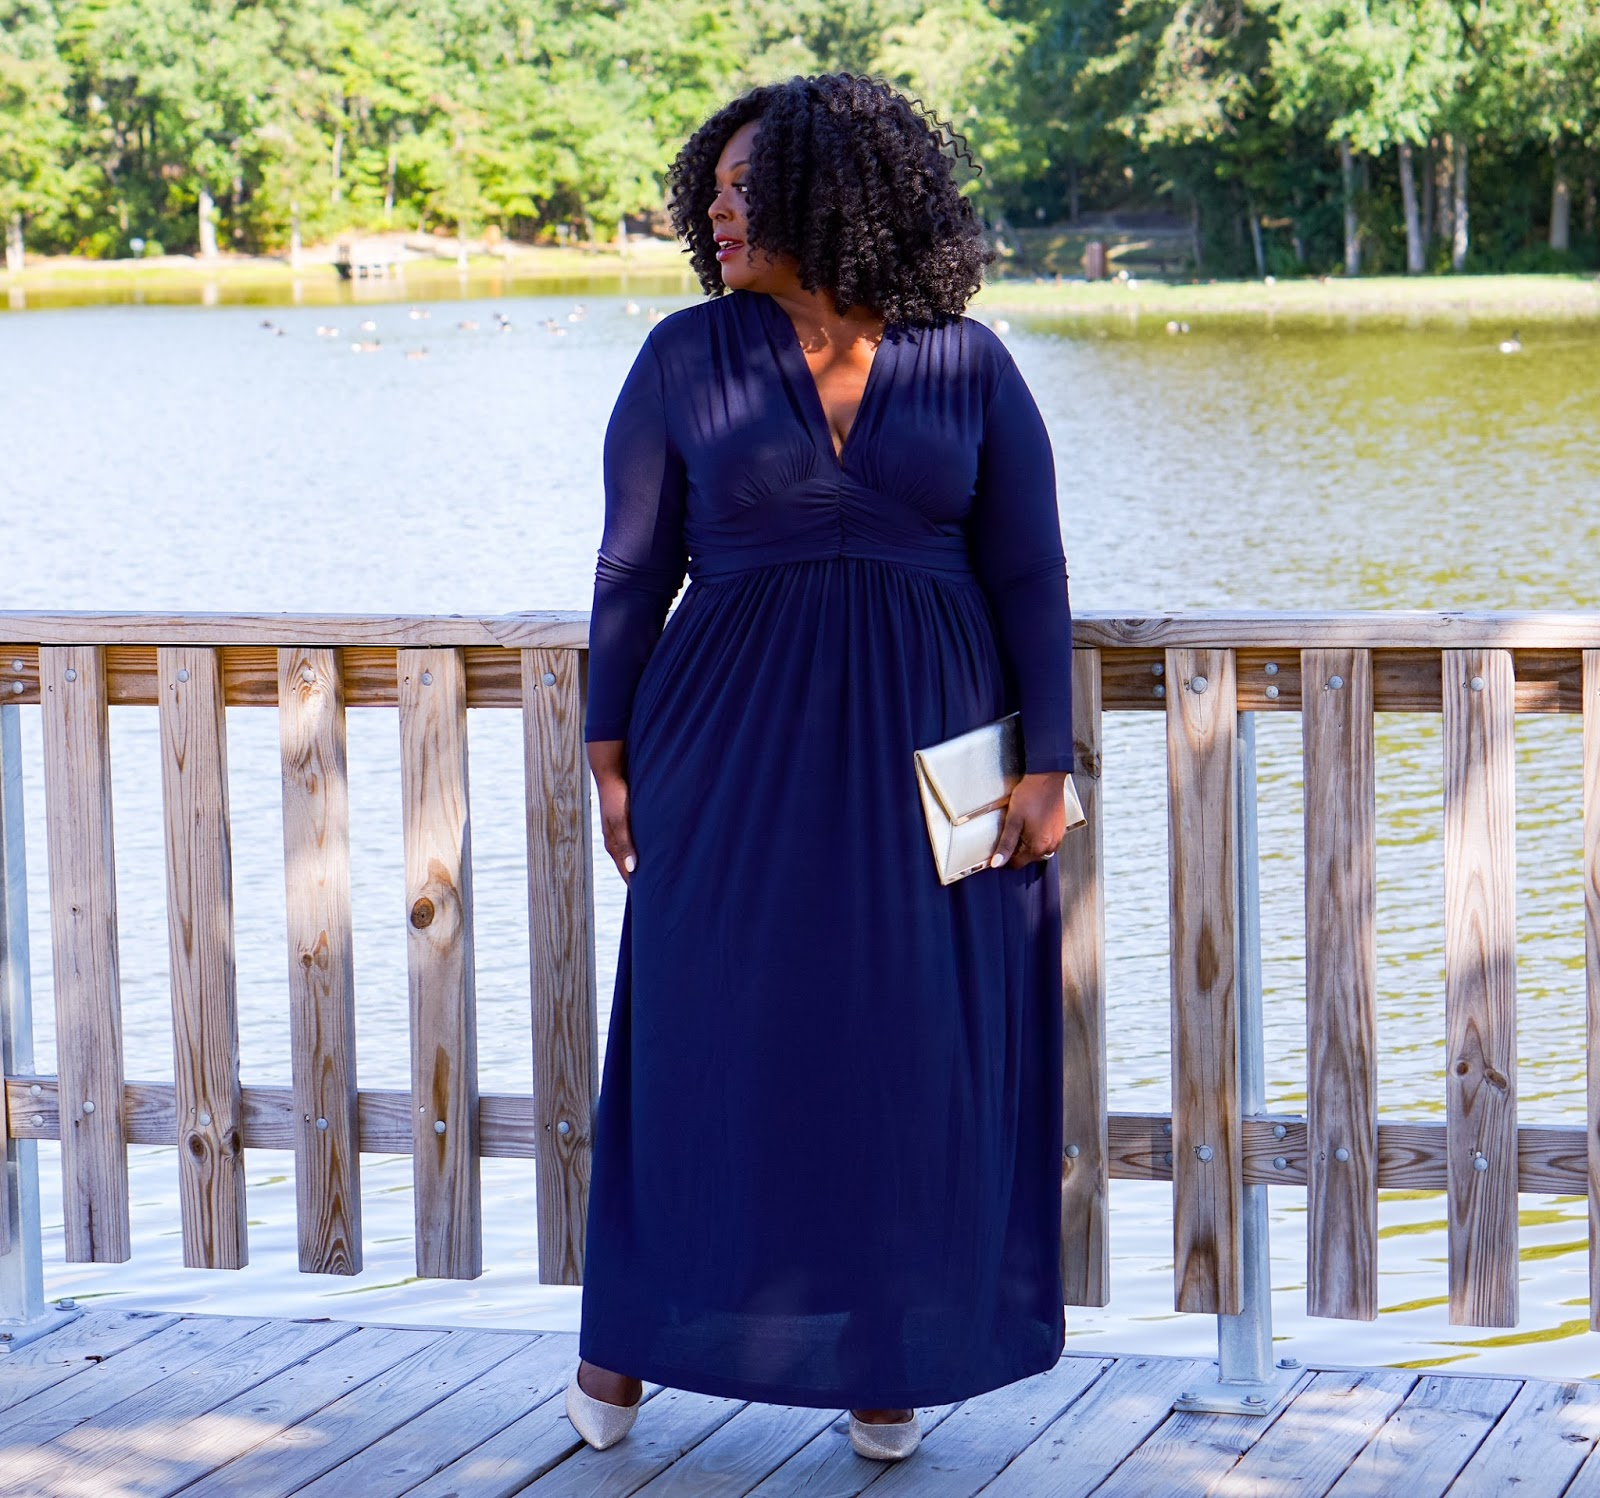 plus size formalwear, plus size maxidress, plus size navy dress, maxidresses